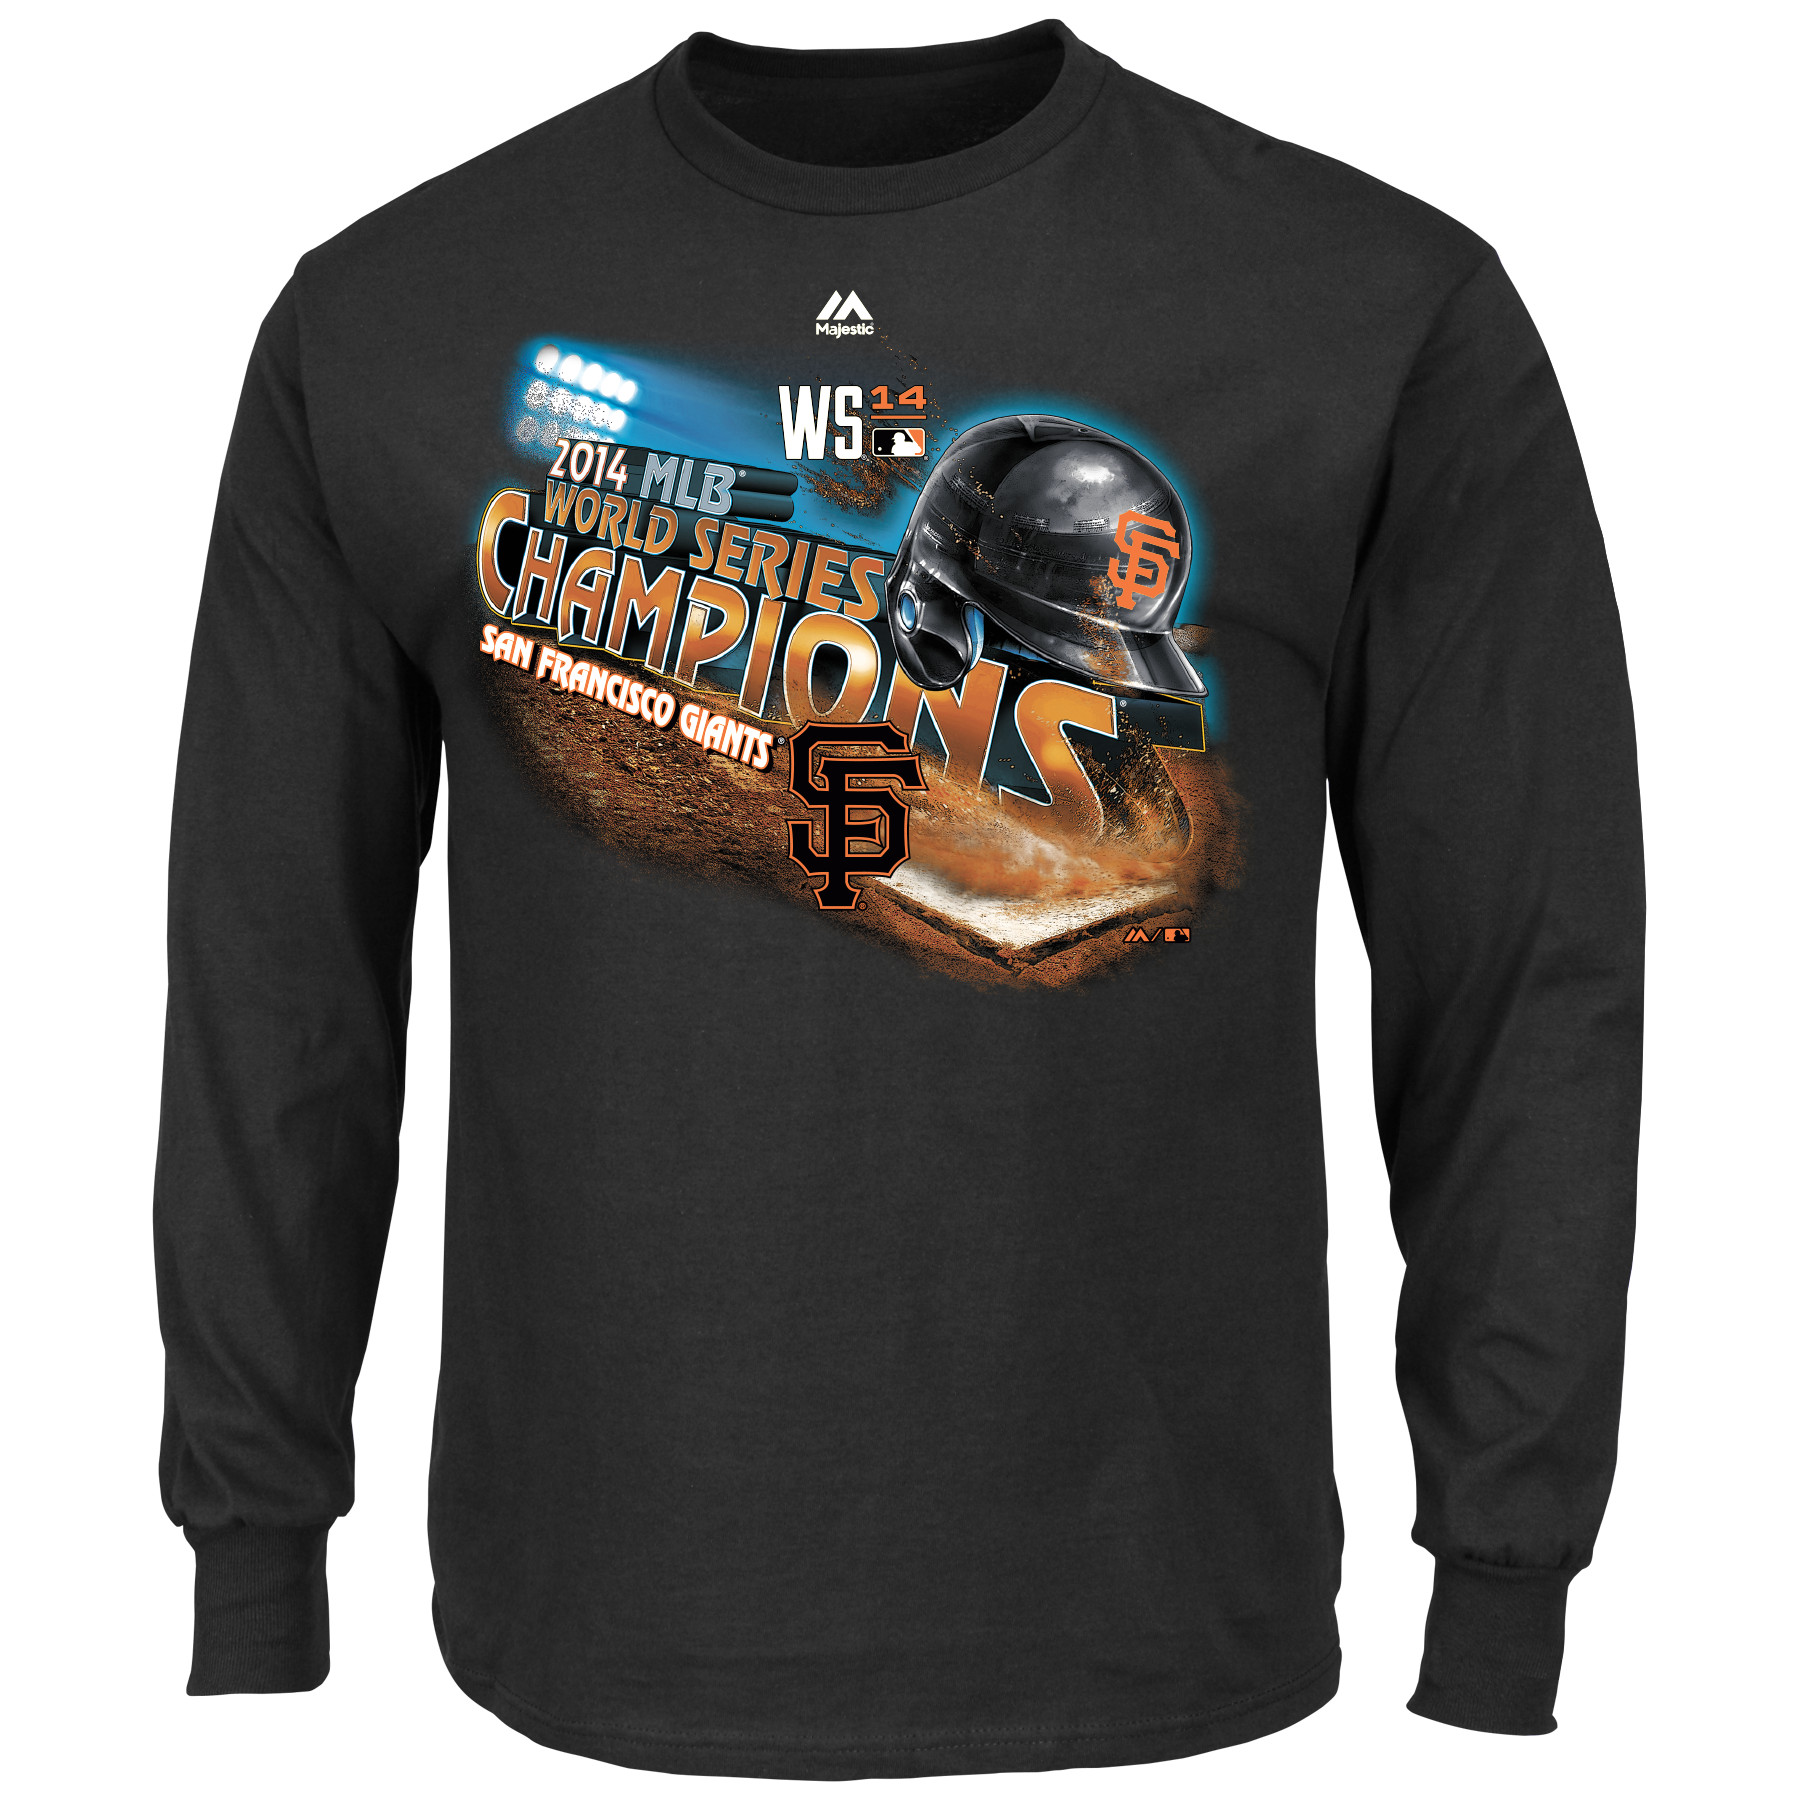 San Francisco Giants Majestic 2014 World Series Champions Pride L/S Mens T-Shirt